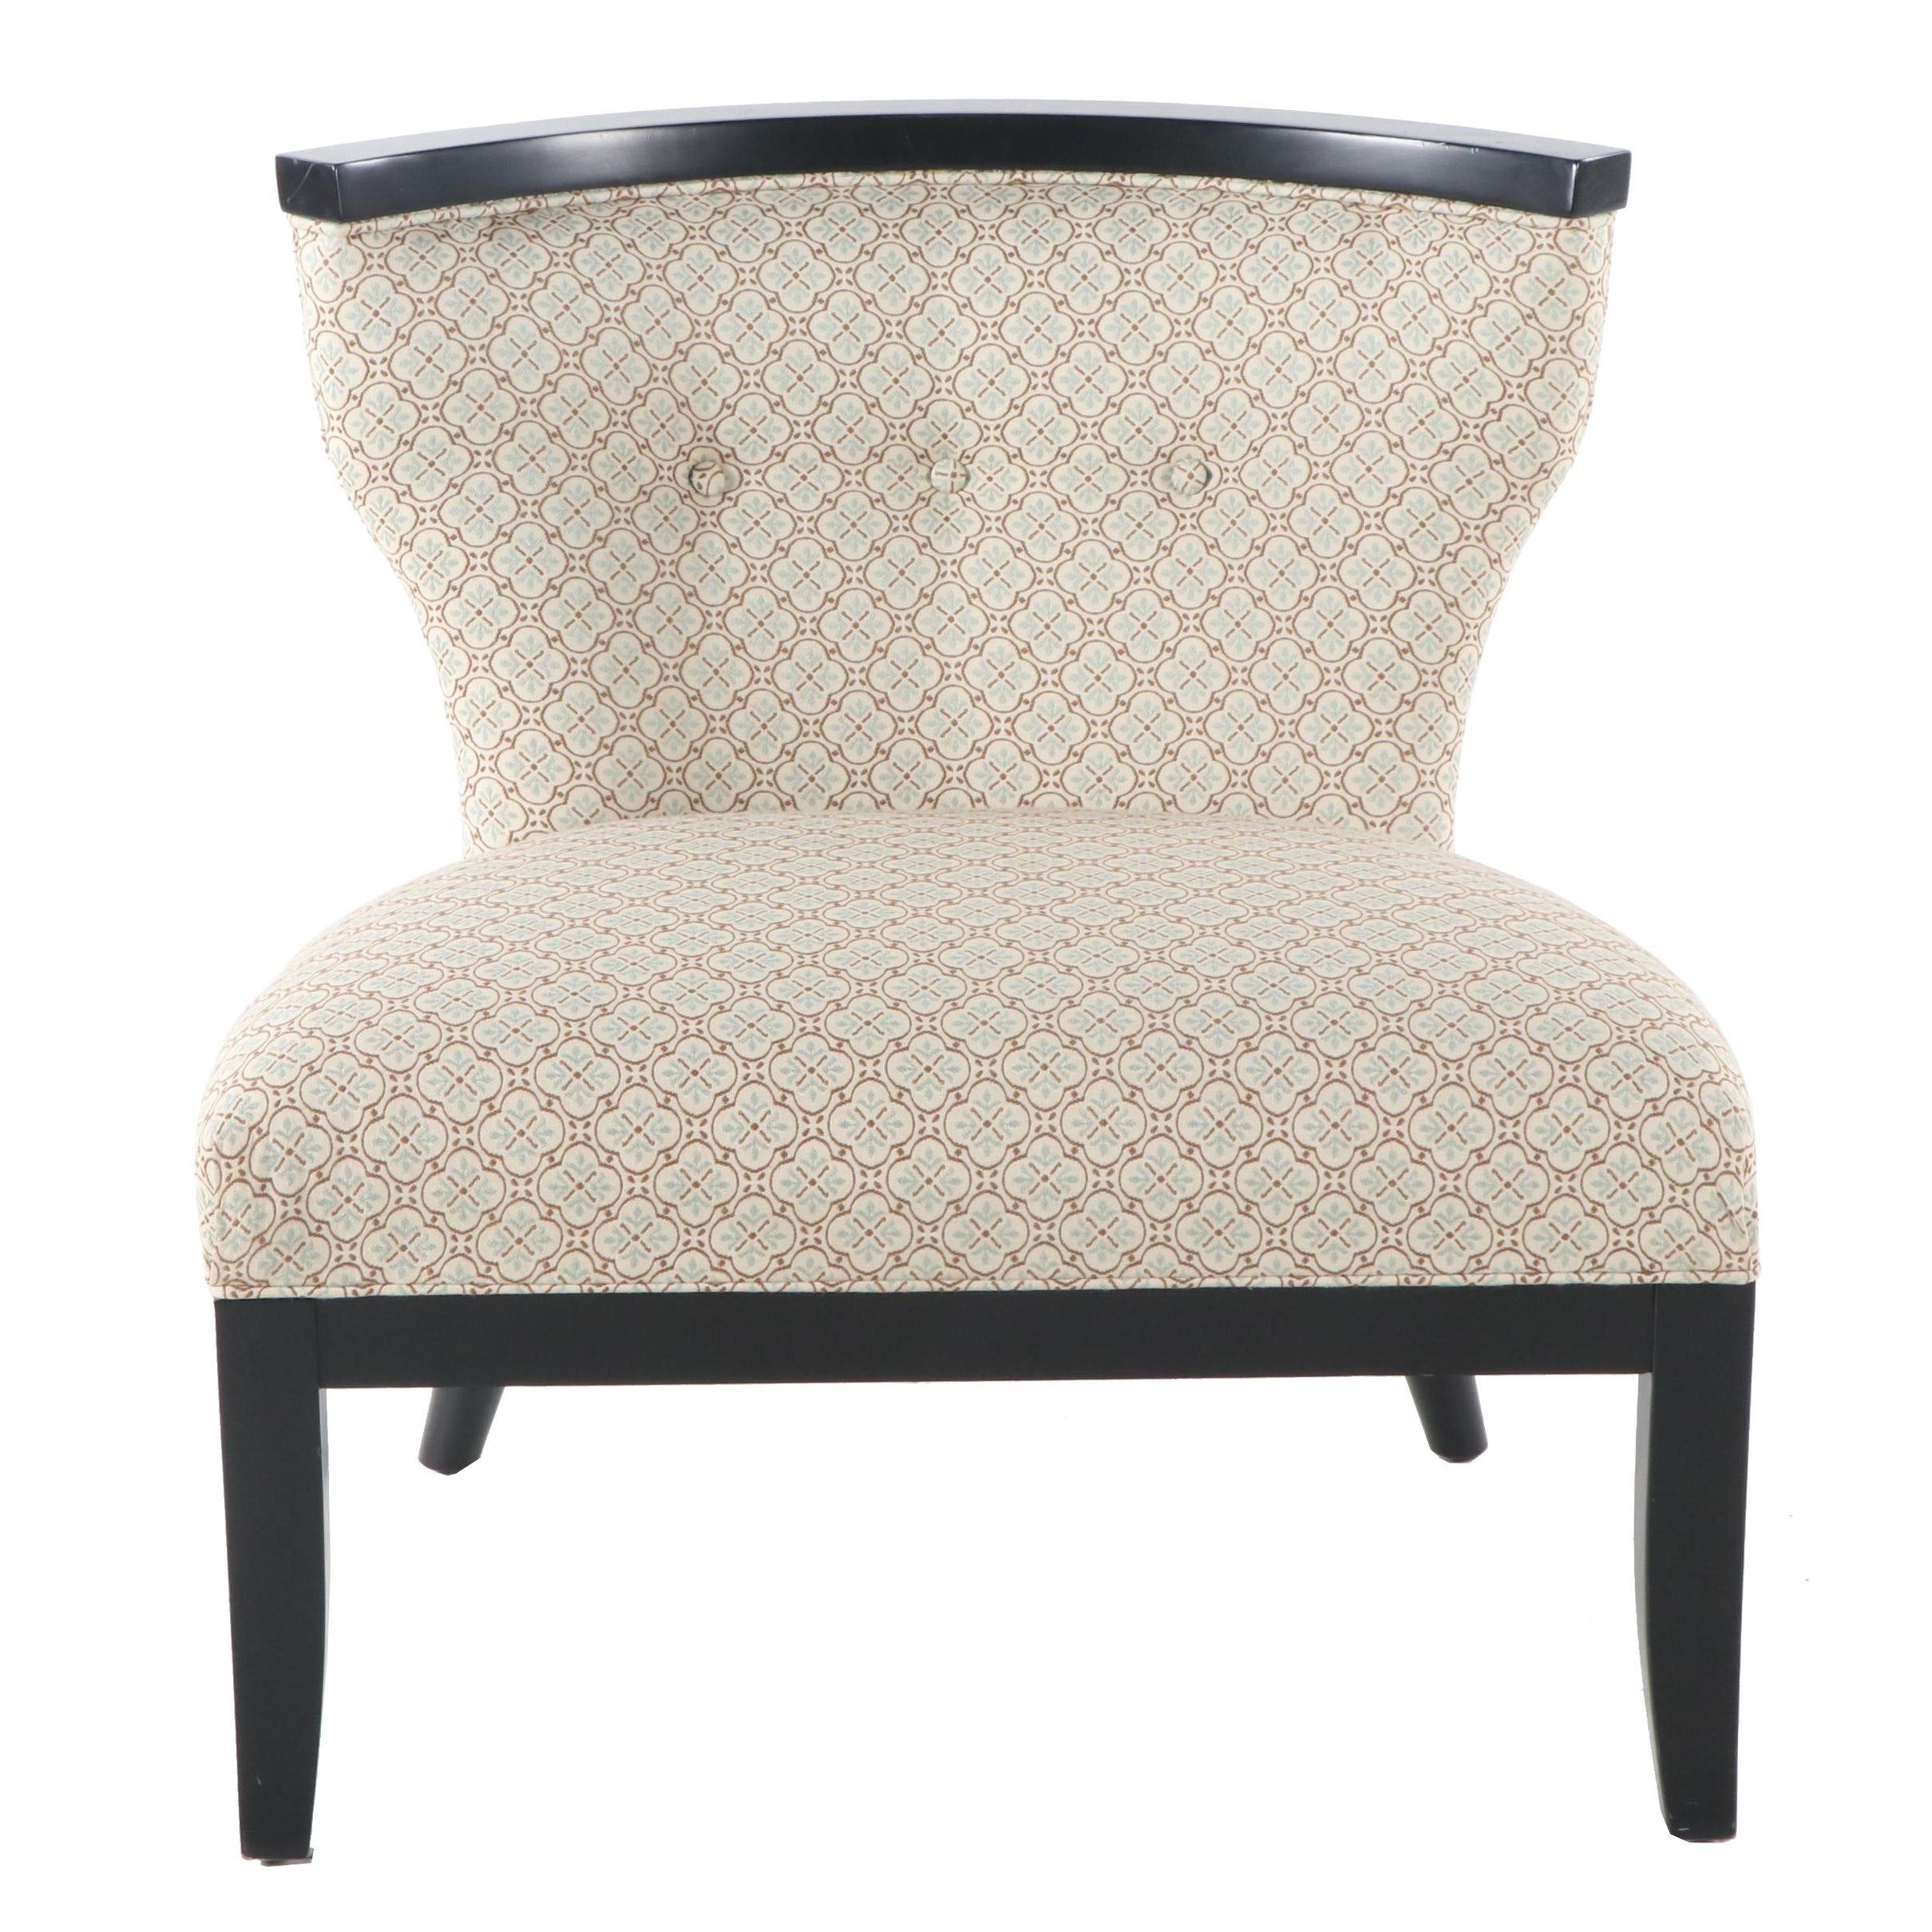 Contemporary Upholstered Occasional Chair, 21st Century